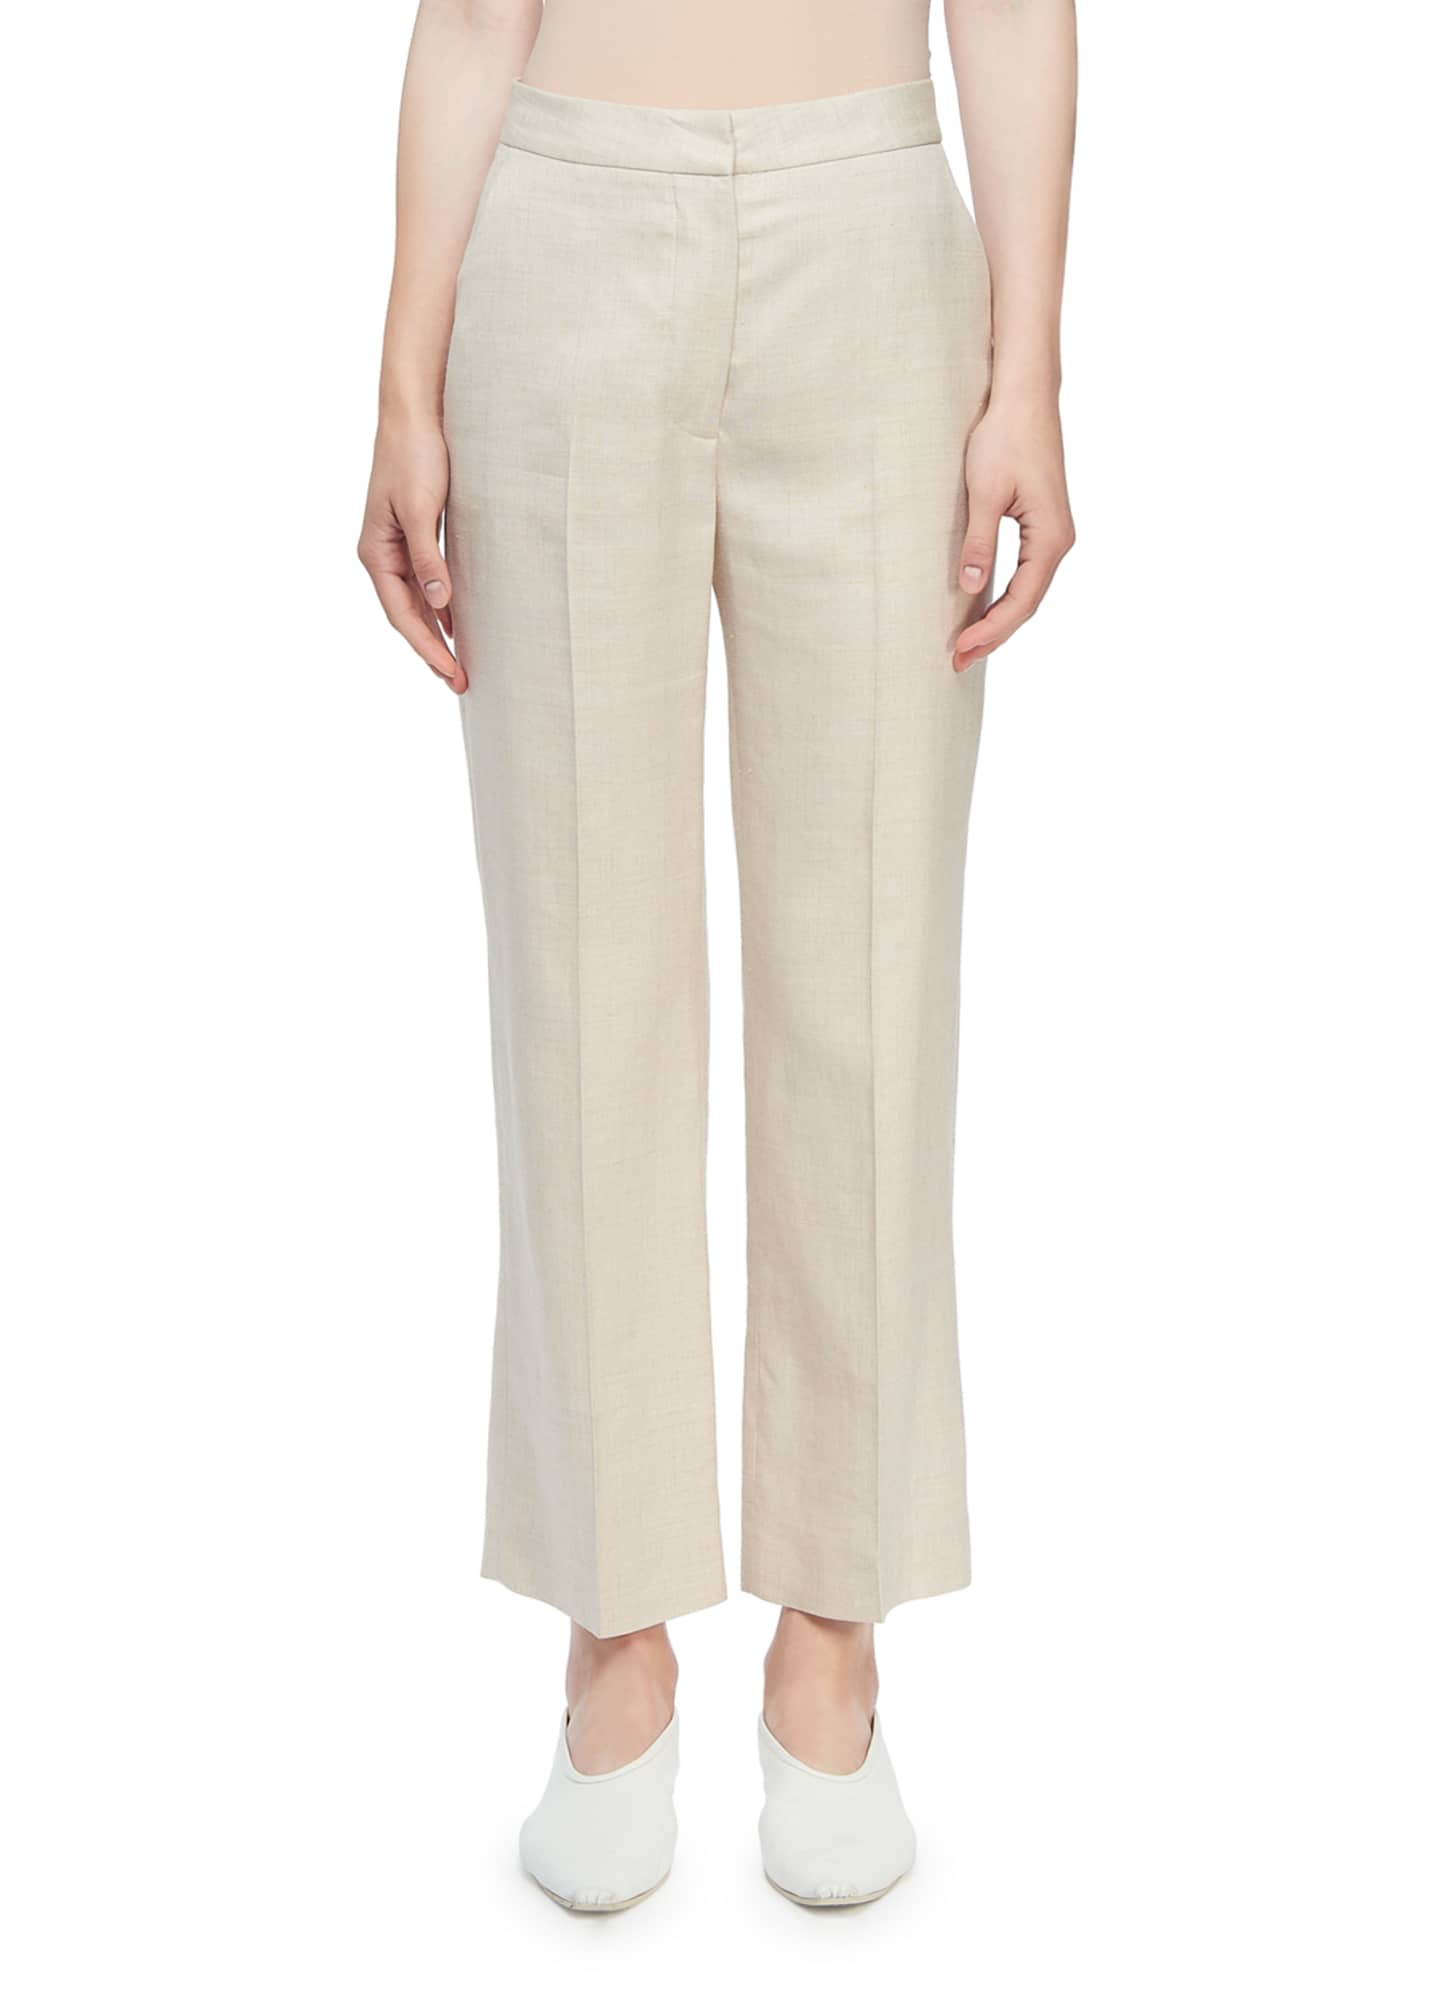 Stella McCartney High-Rise Linen Cropped Trousers